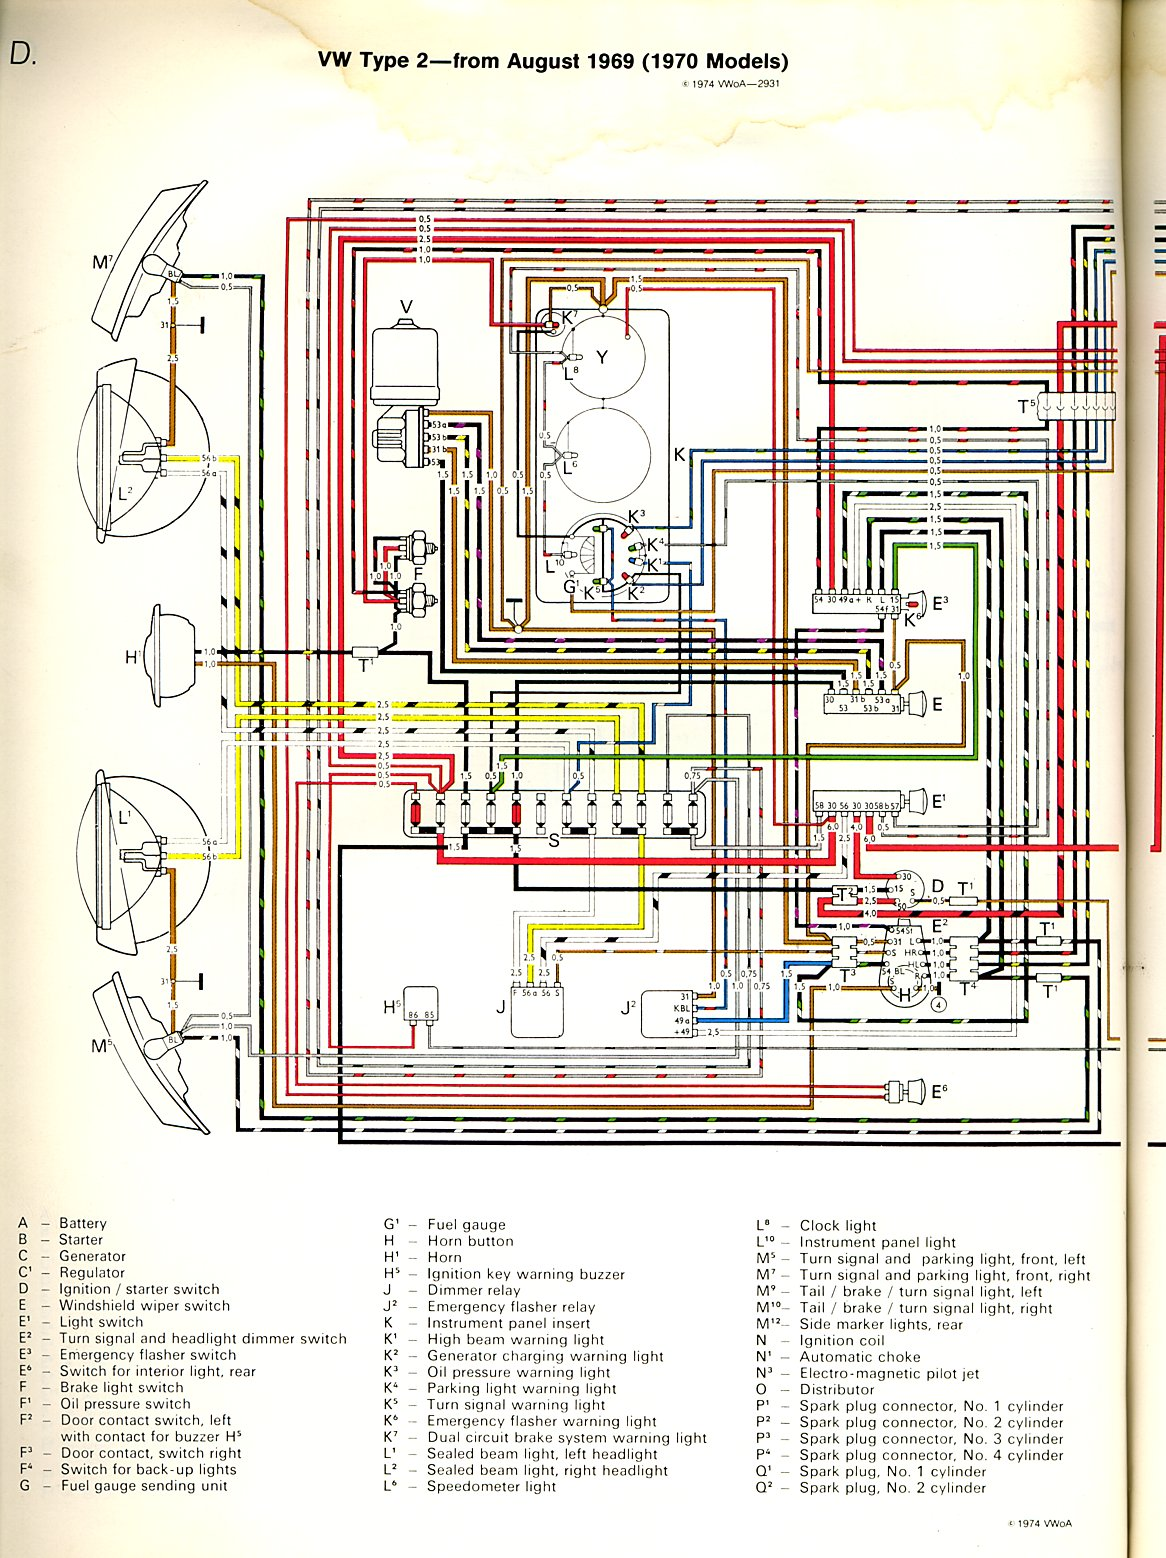 baybus_70a thesamba com type 2 wiring diagrams 1974 vw alternator wiring diagram at readyjetset.co